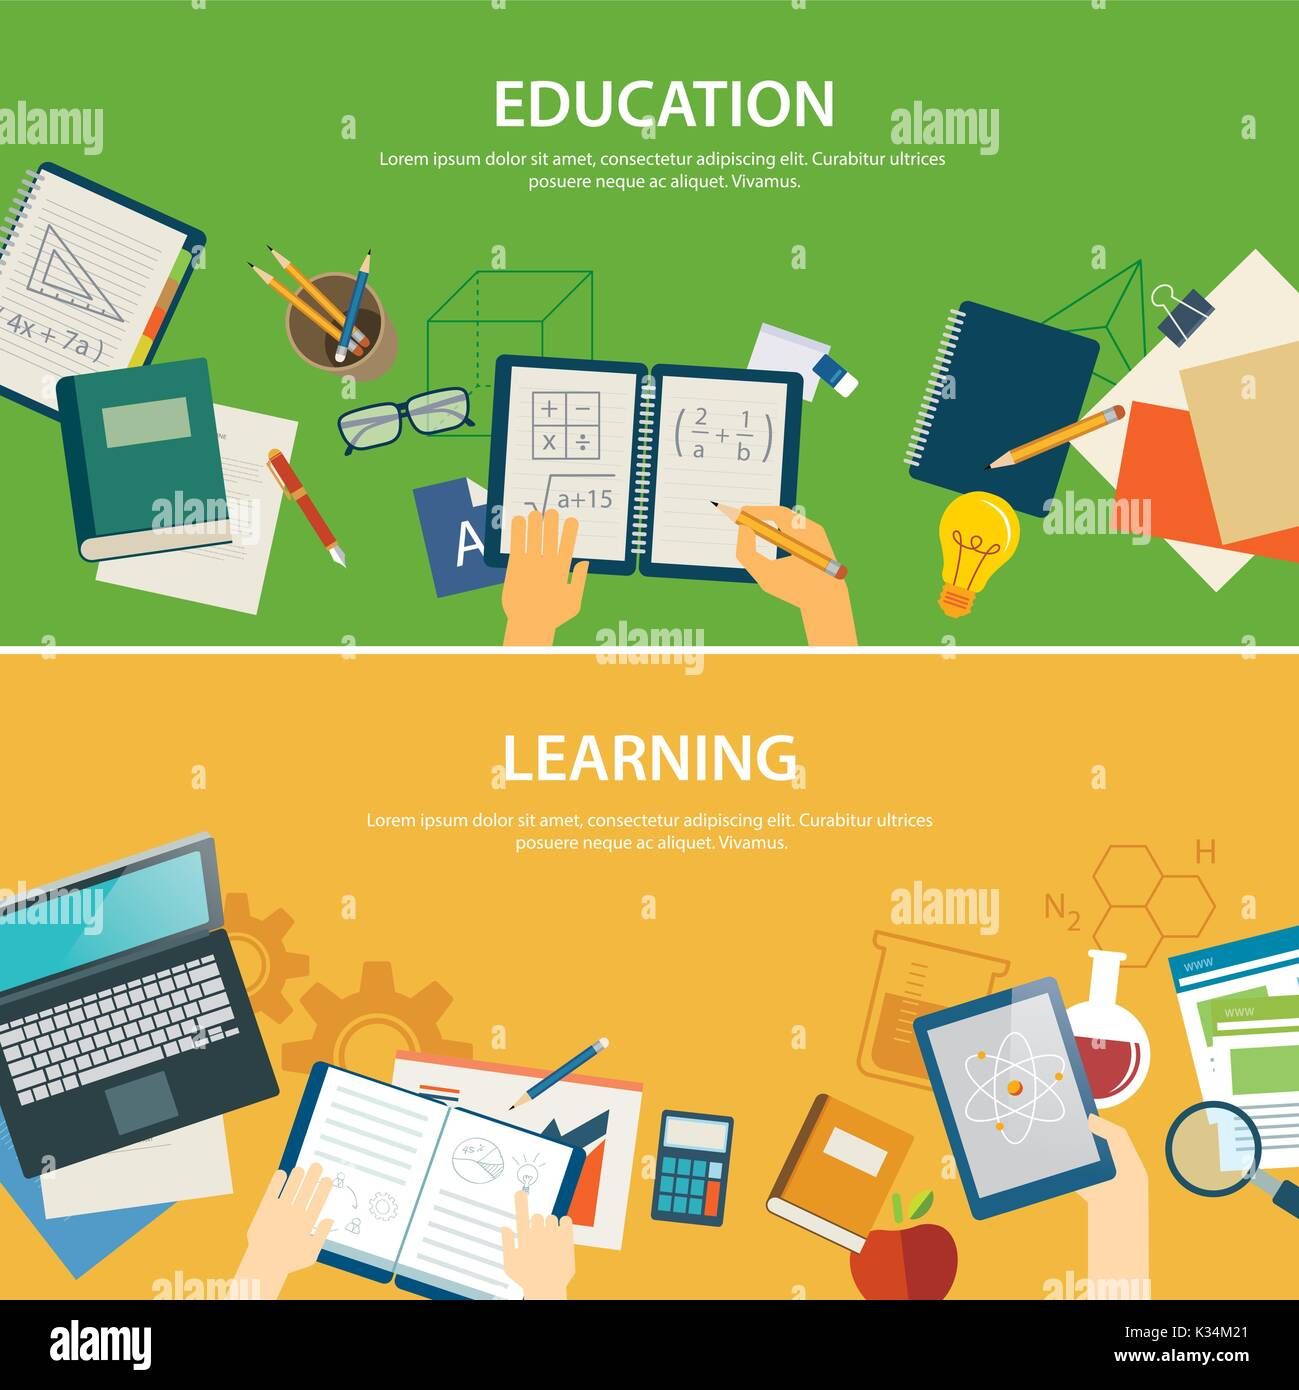 Education And Learning Banner Flat Design Template Stock Vector Image Art Alamy